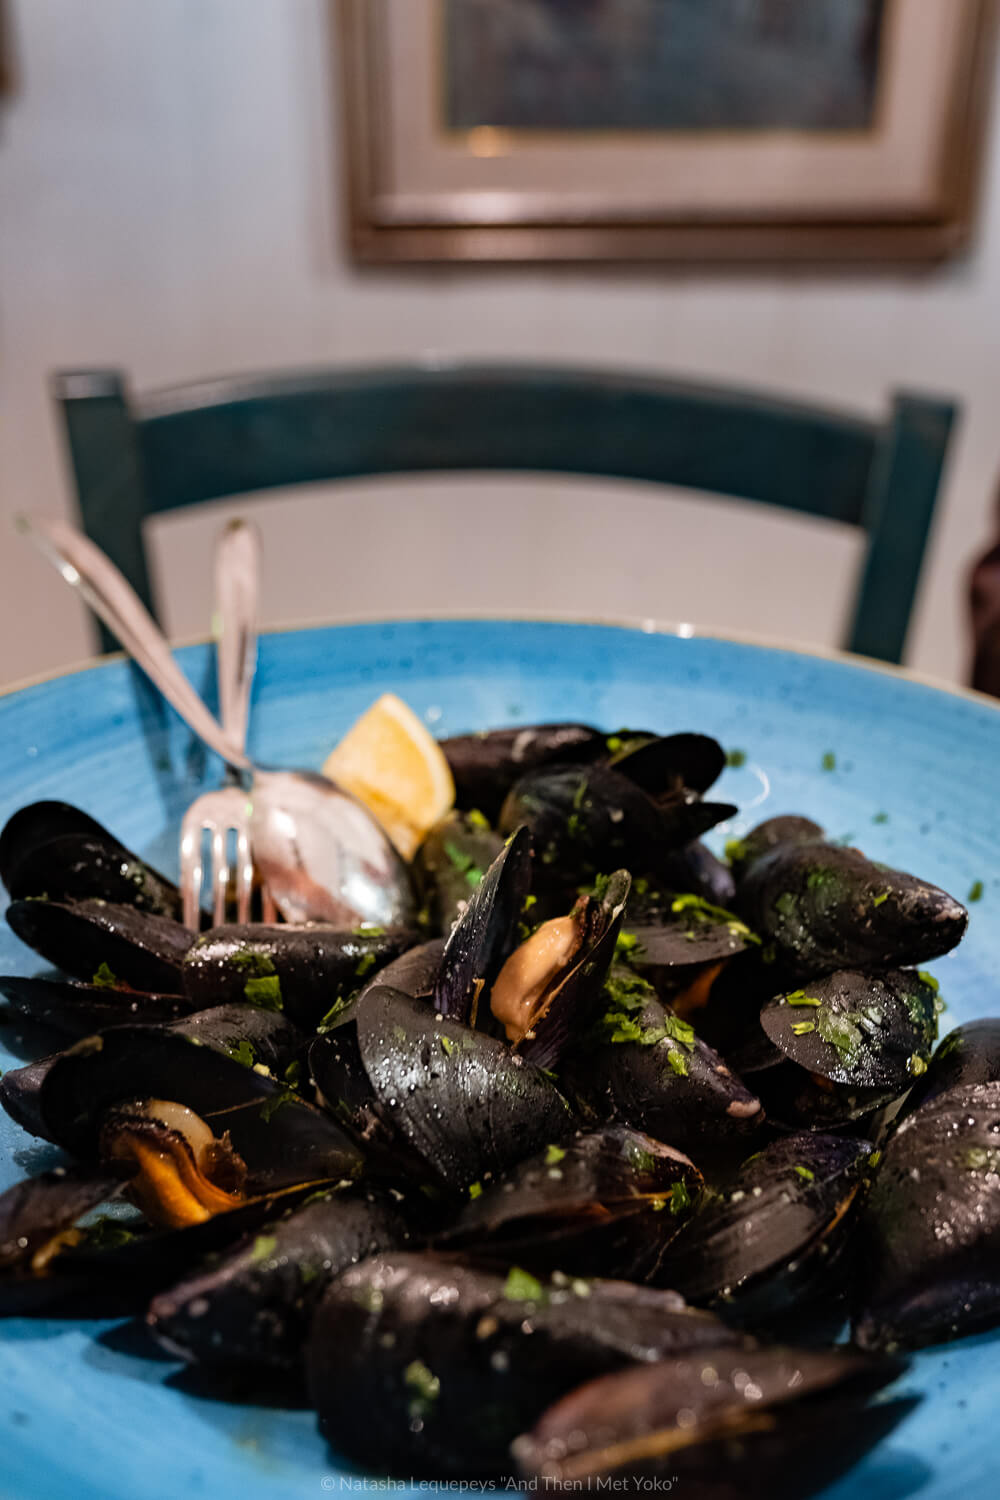 """Mussels from Ristorante Vulnetia, Vernazza. Travel photography and guide by © Natasha Lequepeys for """"And Then I Met Yoko"""". #cinqueterre #italy #travelphotography"""